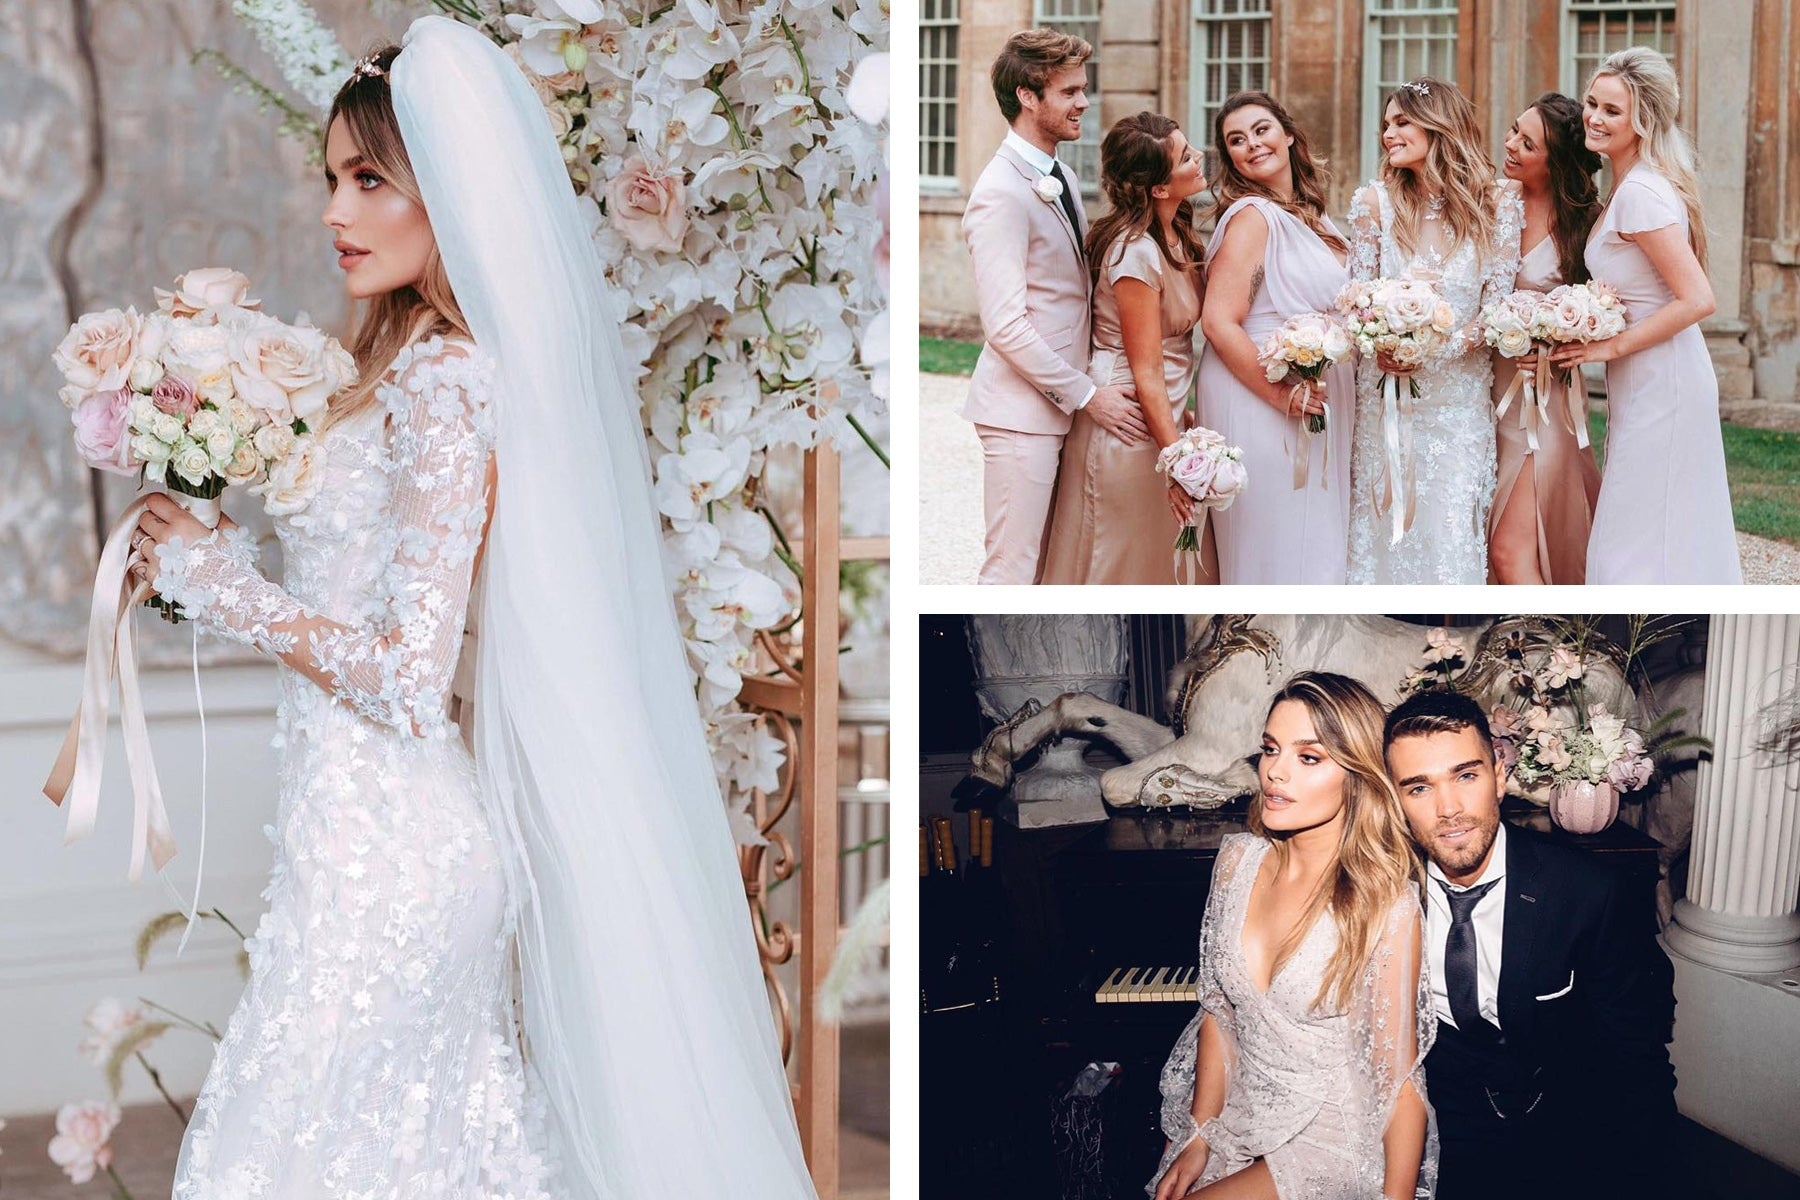 Eternal_Bridal_Bride_Crush_Top_5_Galia_Lahav_Brides_Chloe_2